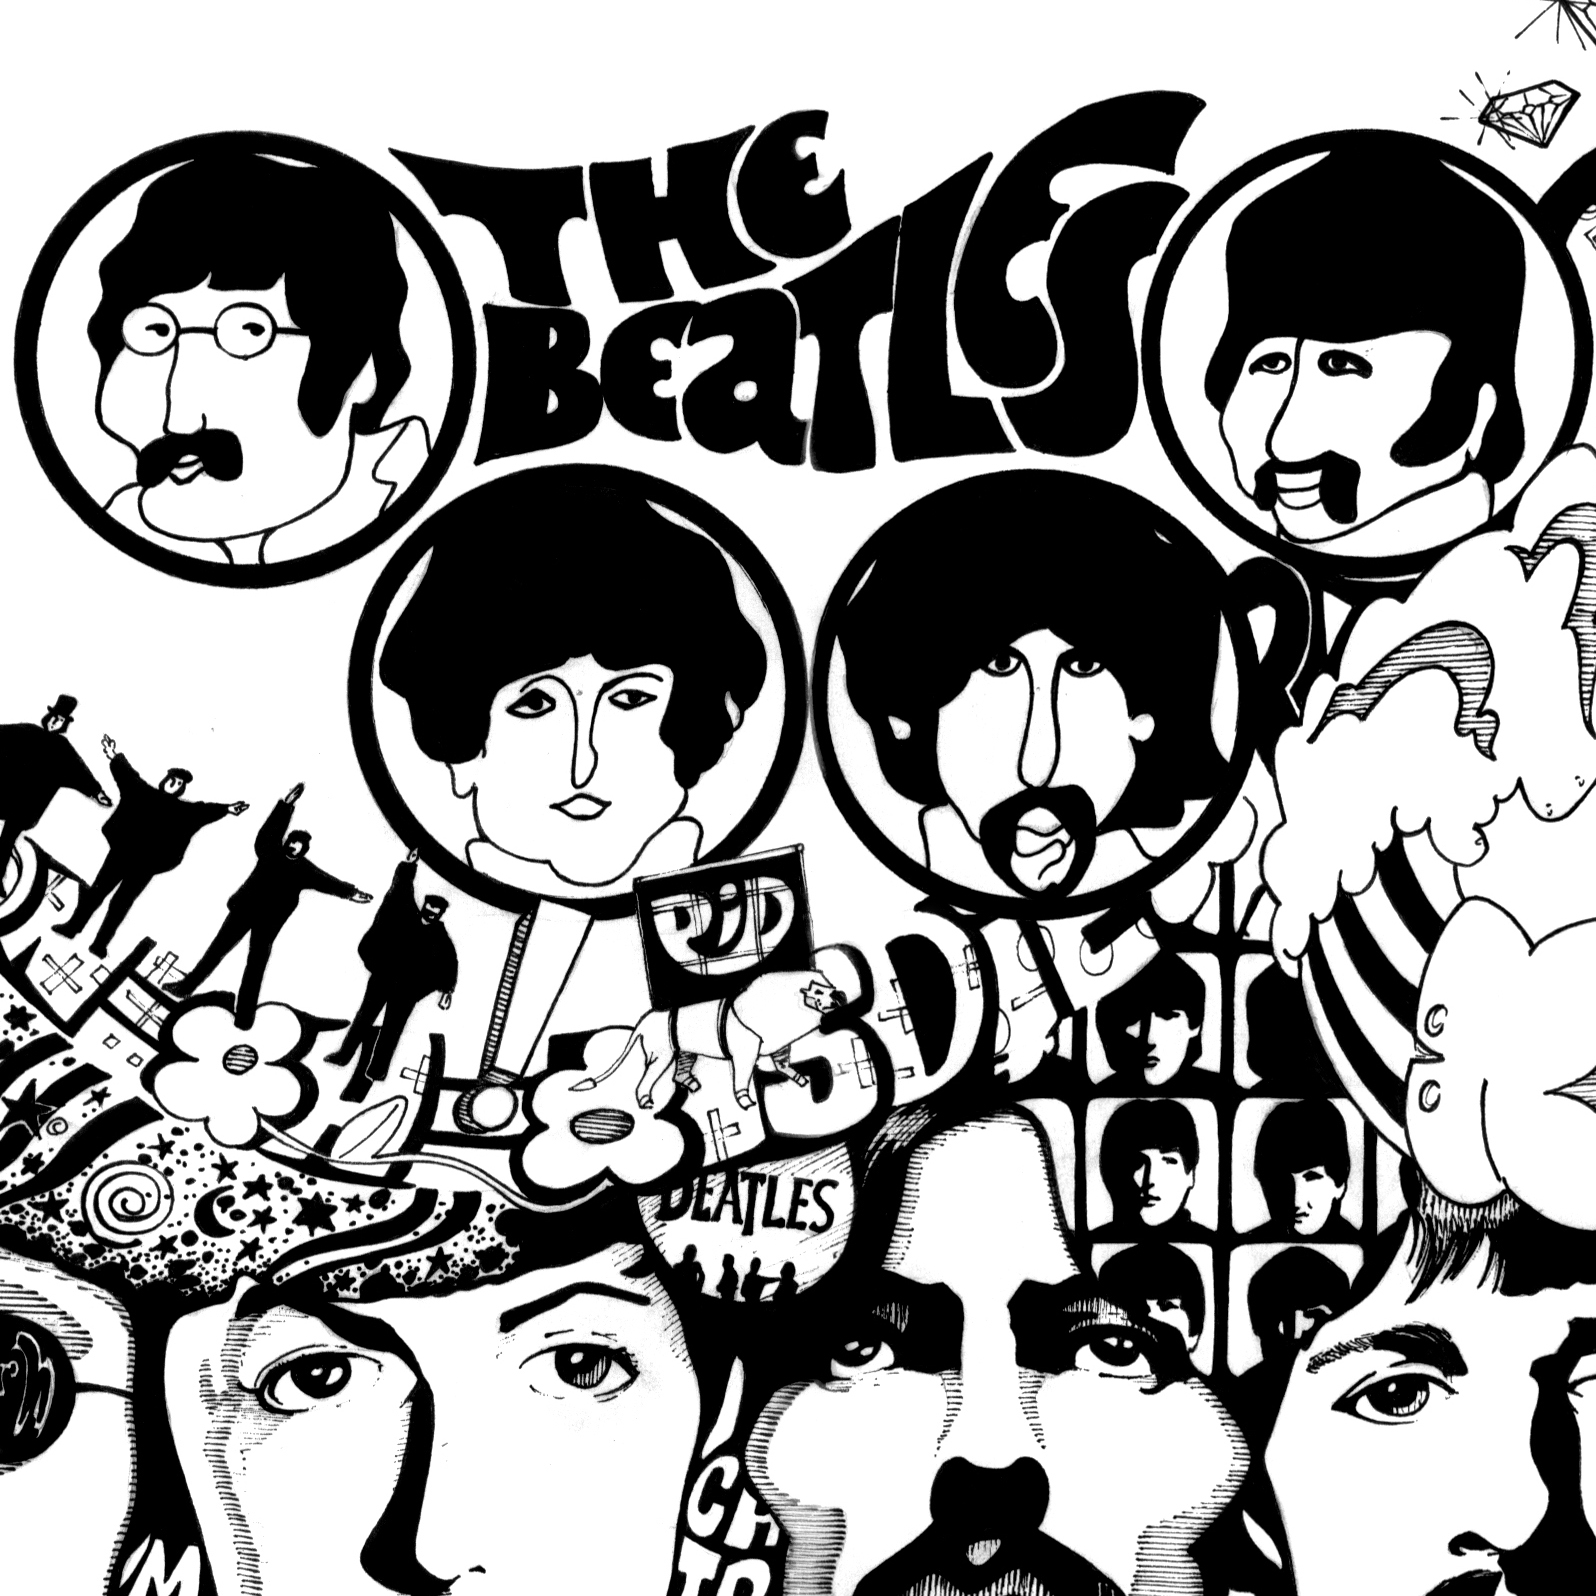 epico_beatles_3